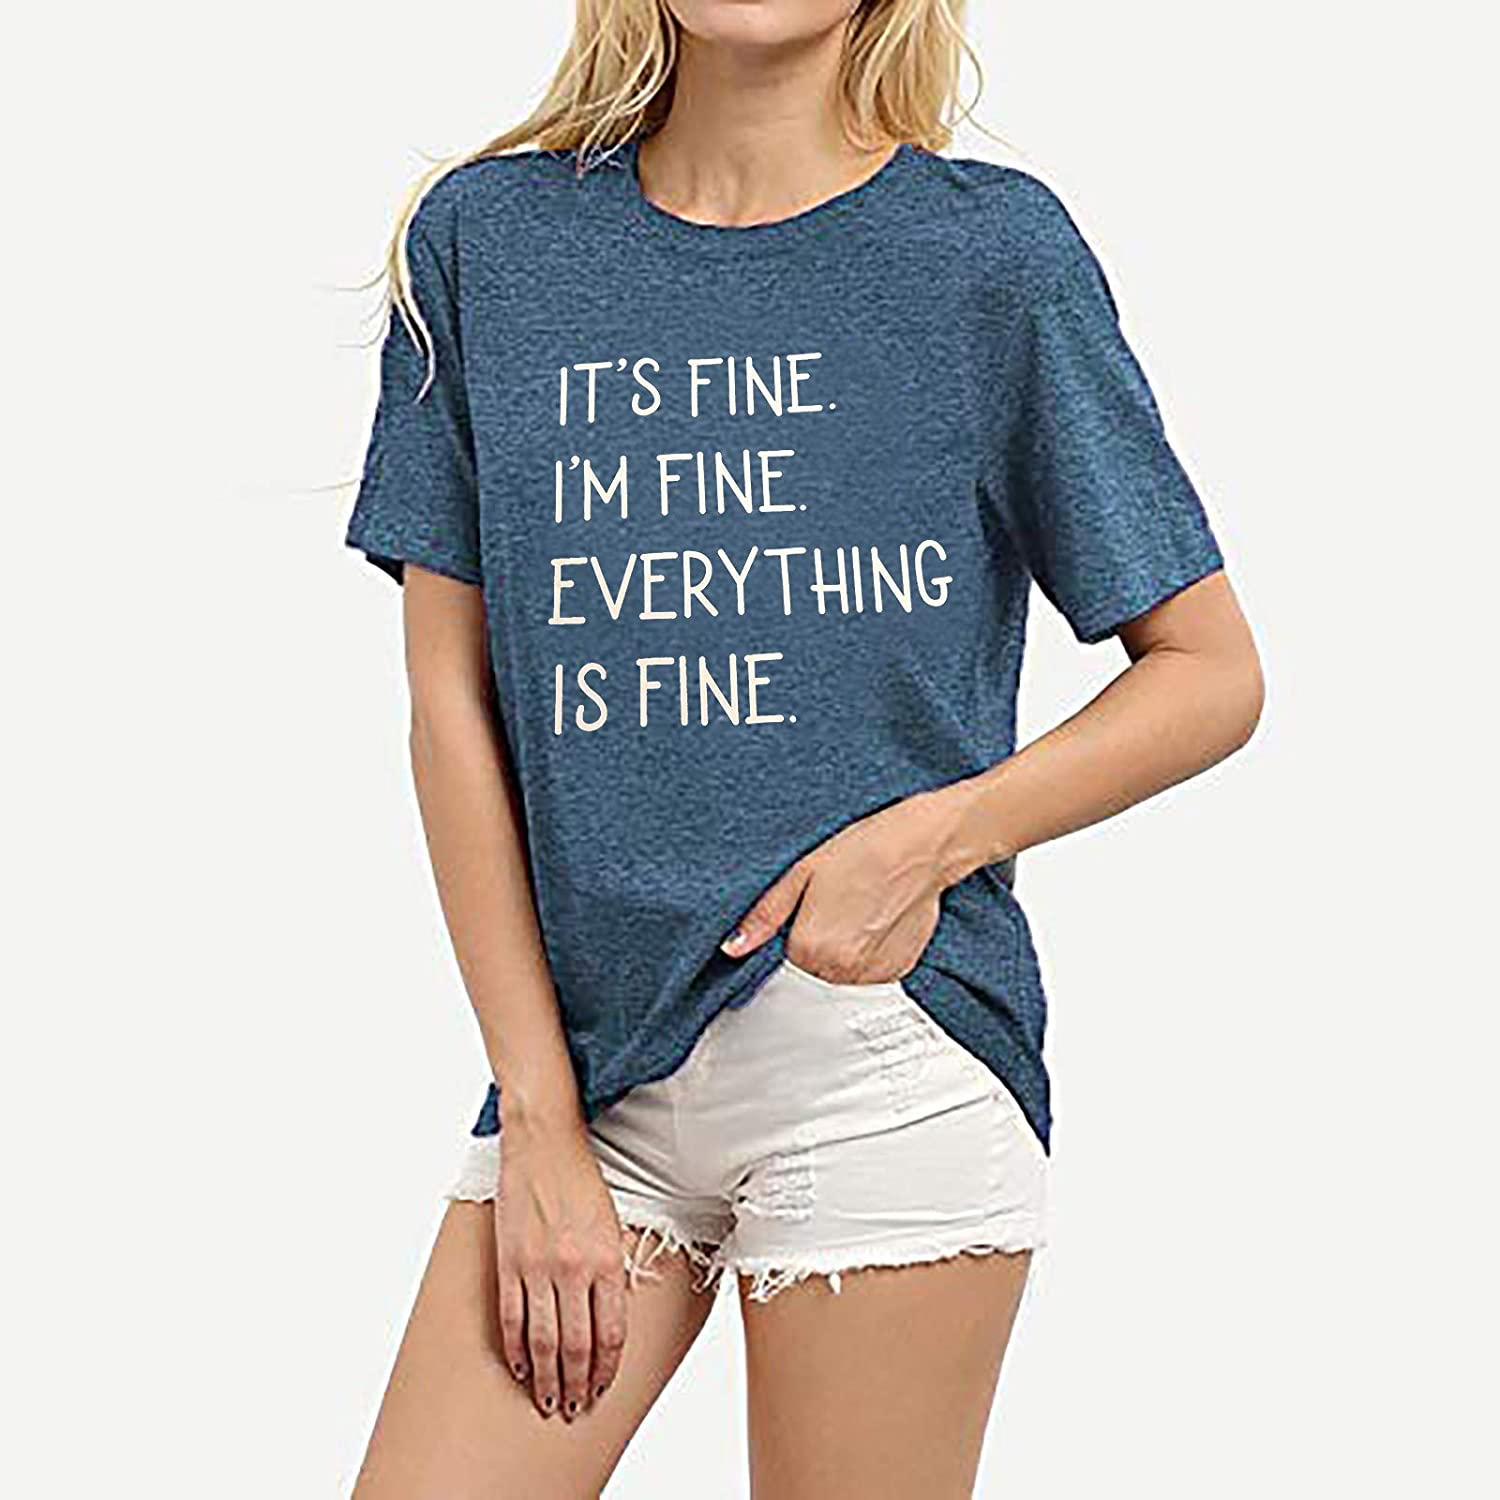 Qcyuui Its Fine Im Fine Everything is Fine Sarcastic T Shirt Women Short Sleeve Funny Letter Print Tee Tops Blouse